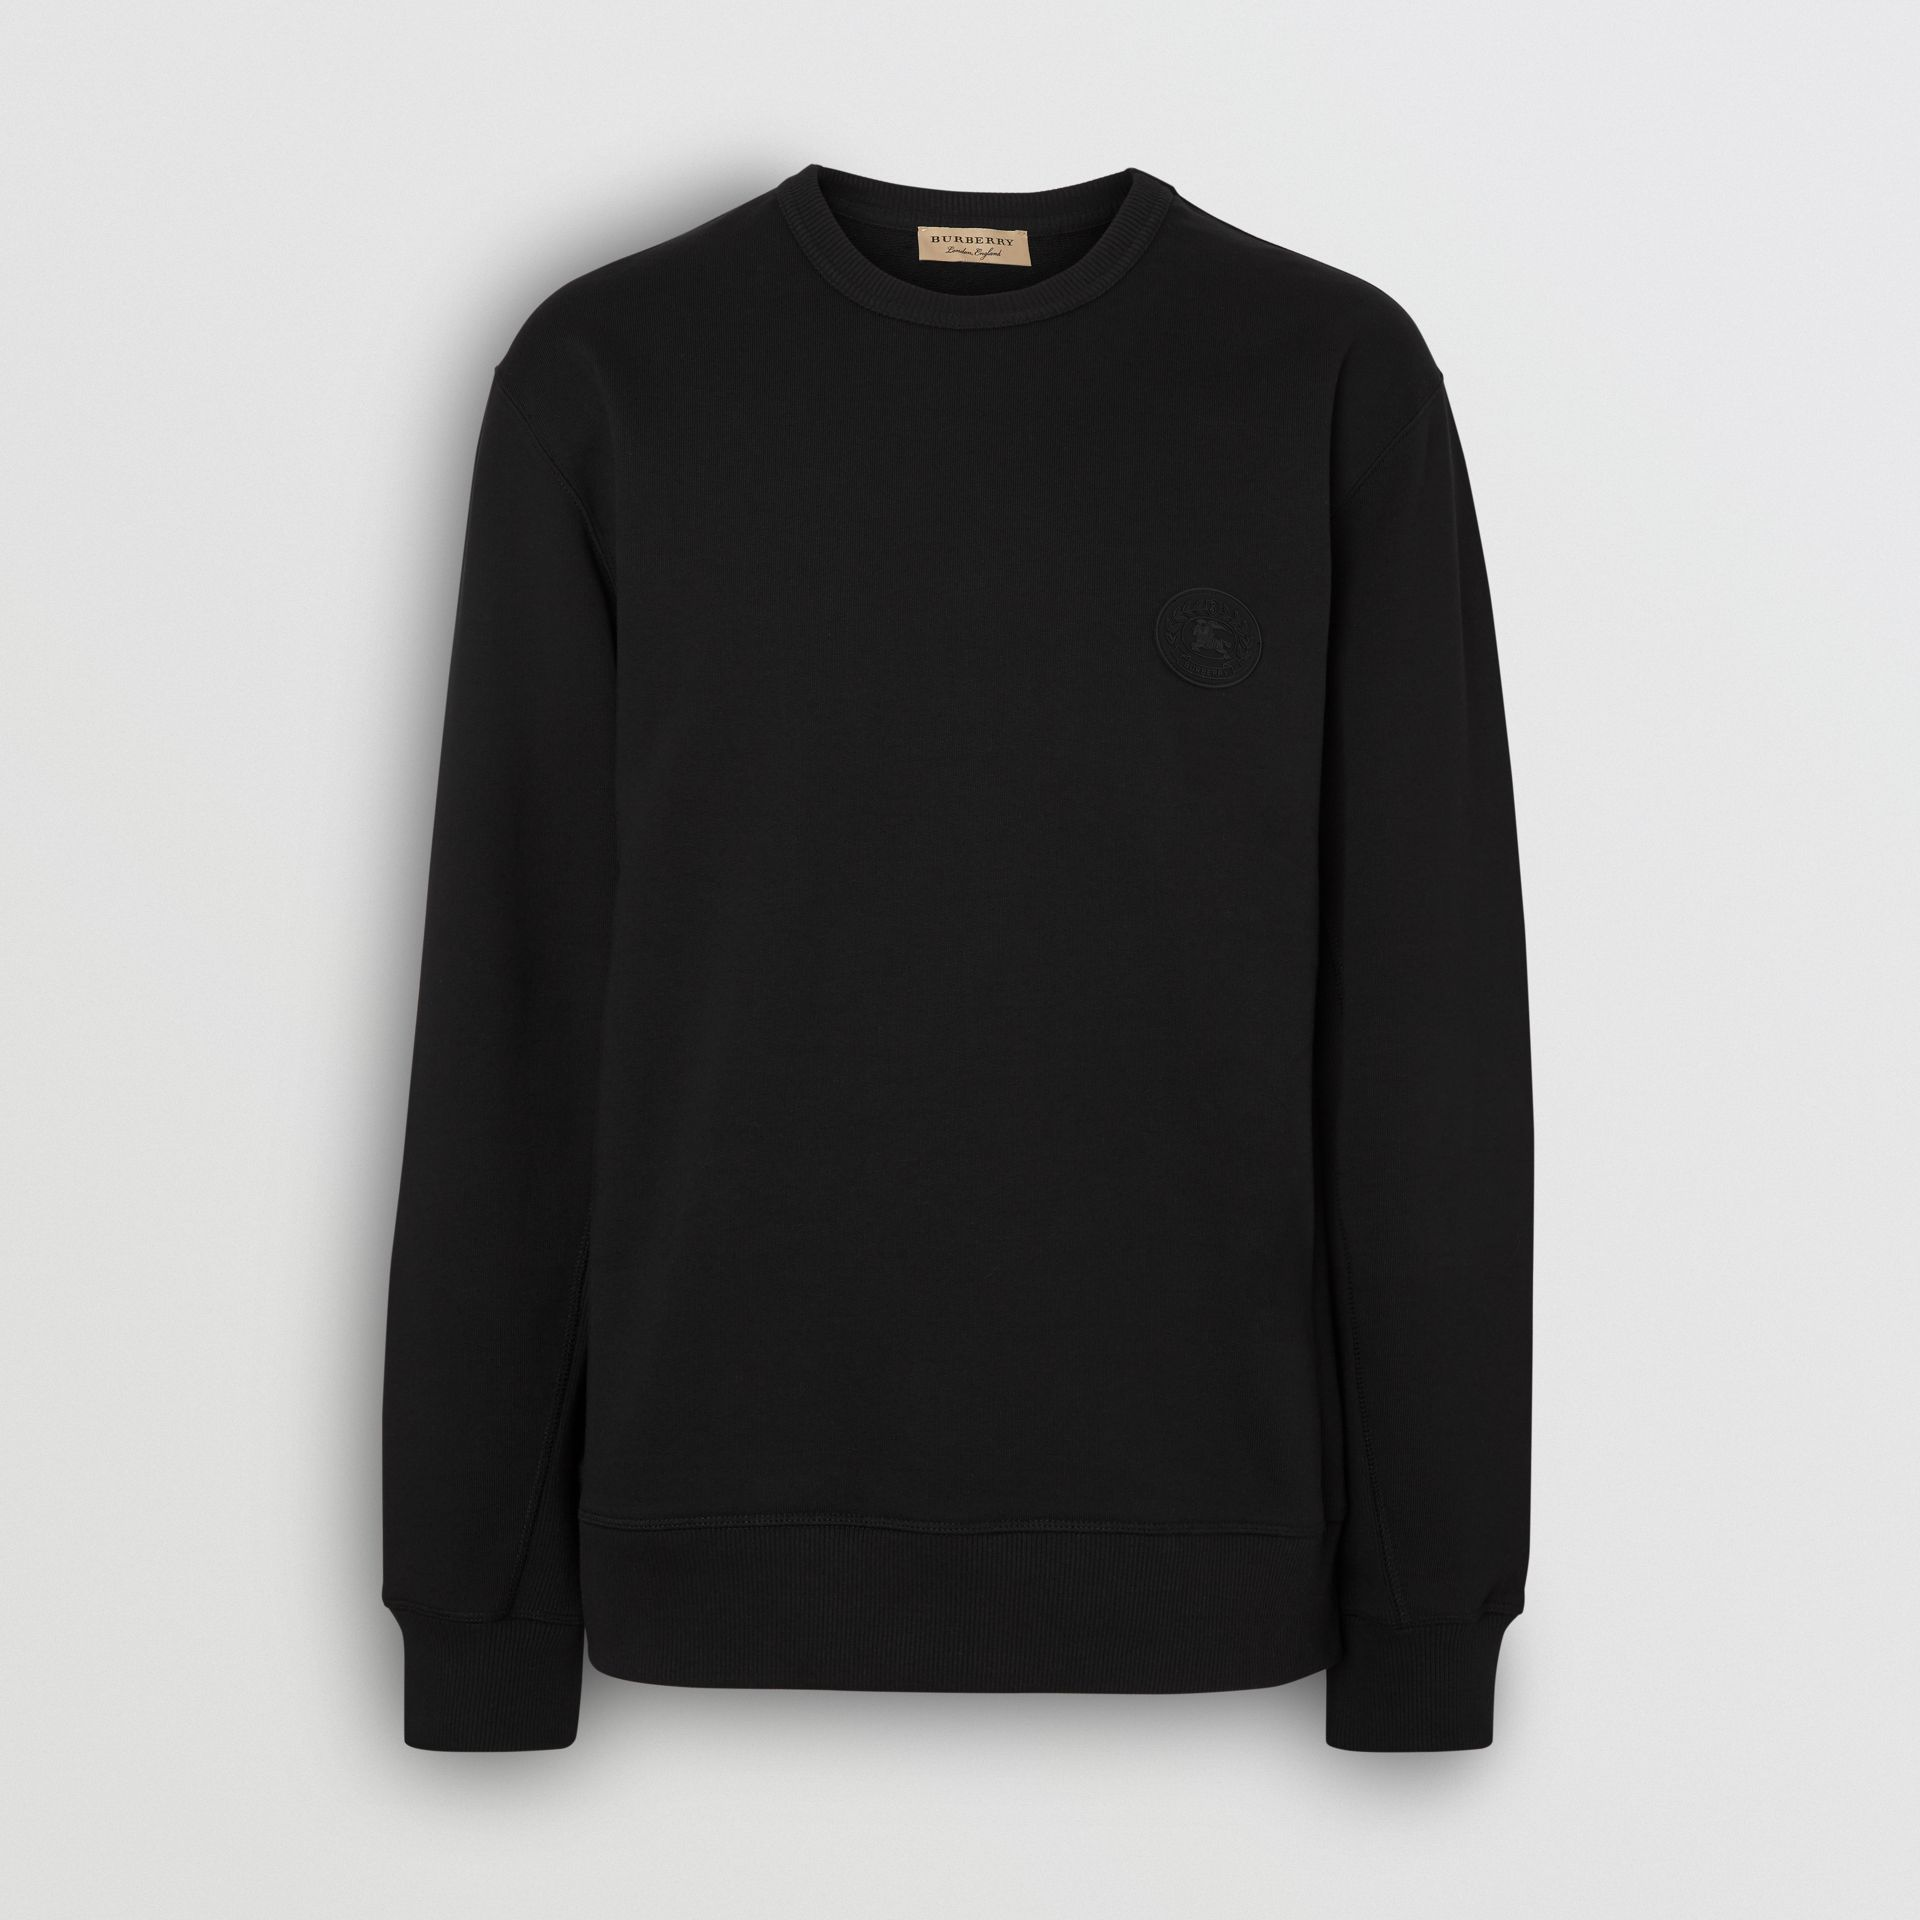 Embroidered Crest Cotton Sweatshirt in Black - Men | Burberry United Kingdom - gallery image 3